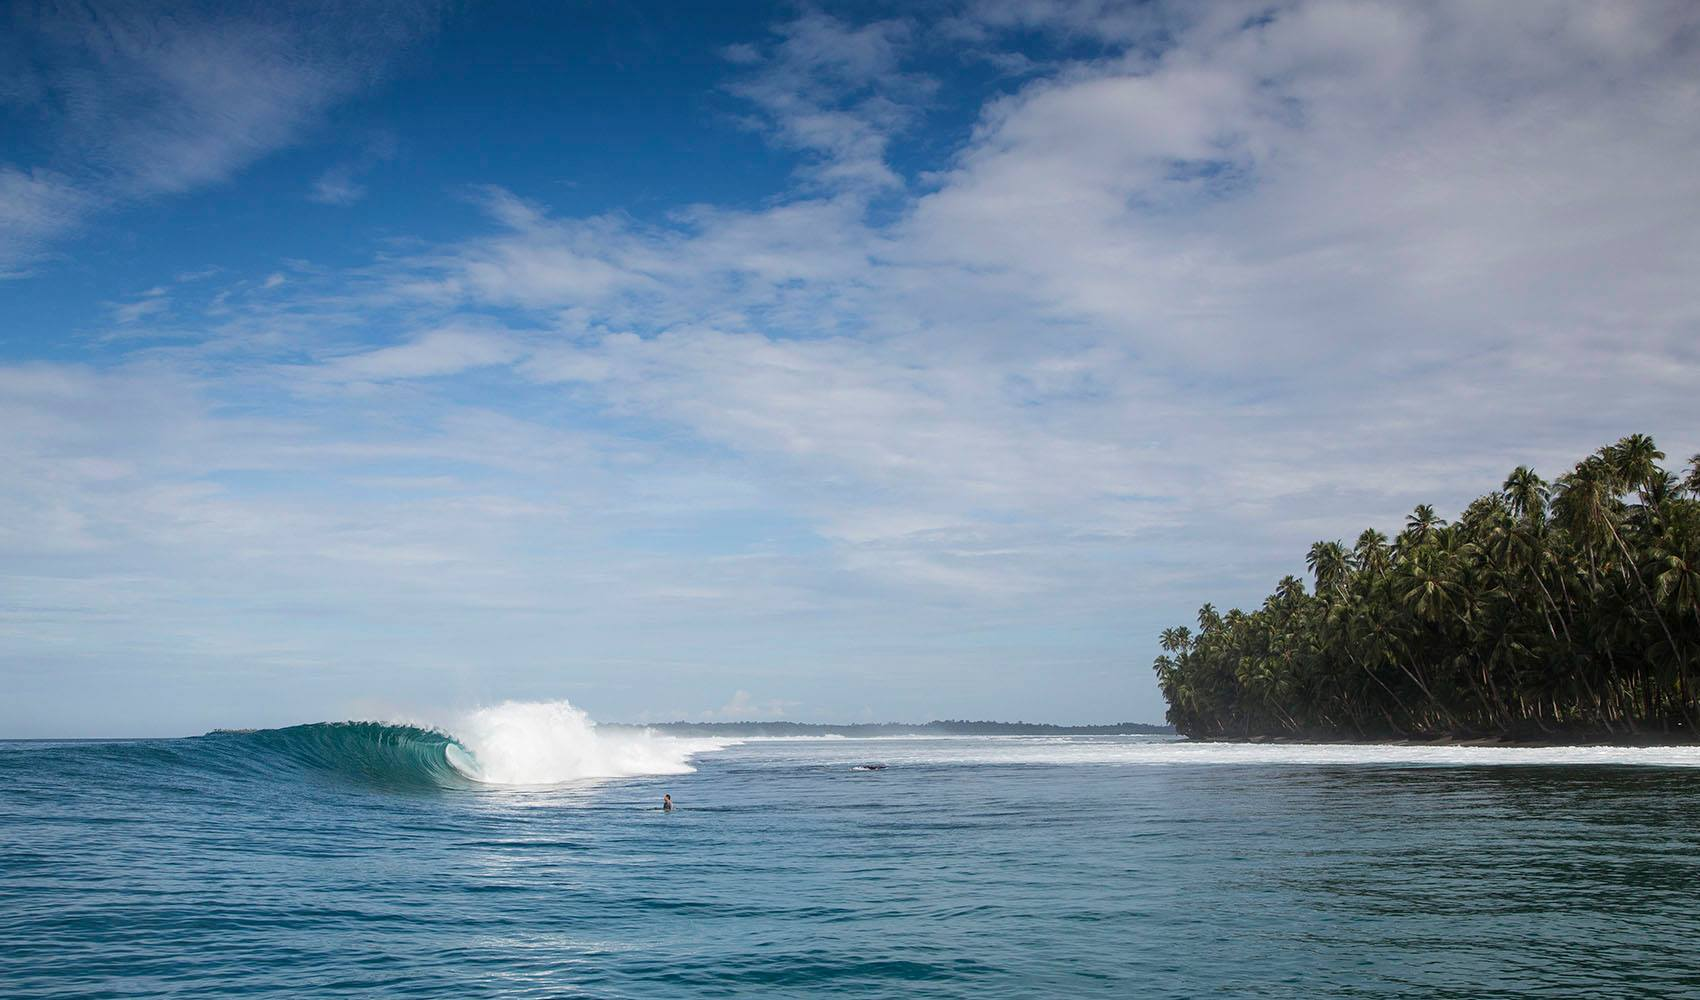 Telo_Island_Lodge_Surf_Indonesia_right_barrel.jpg